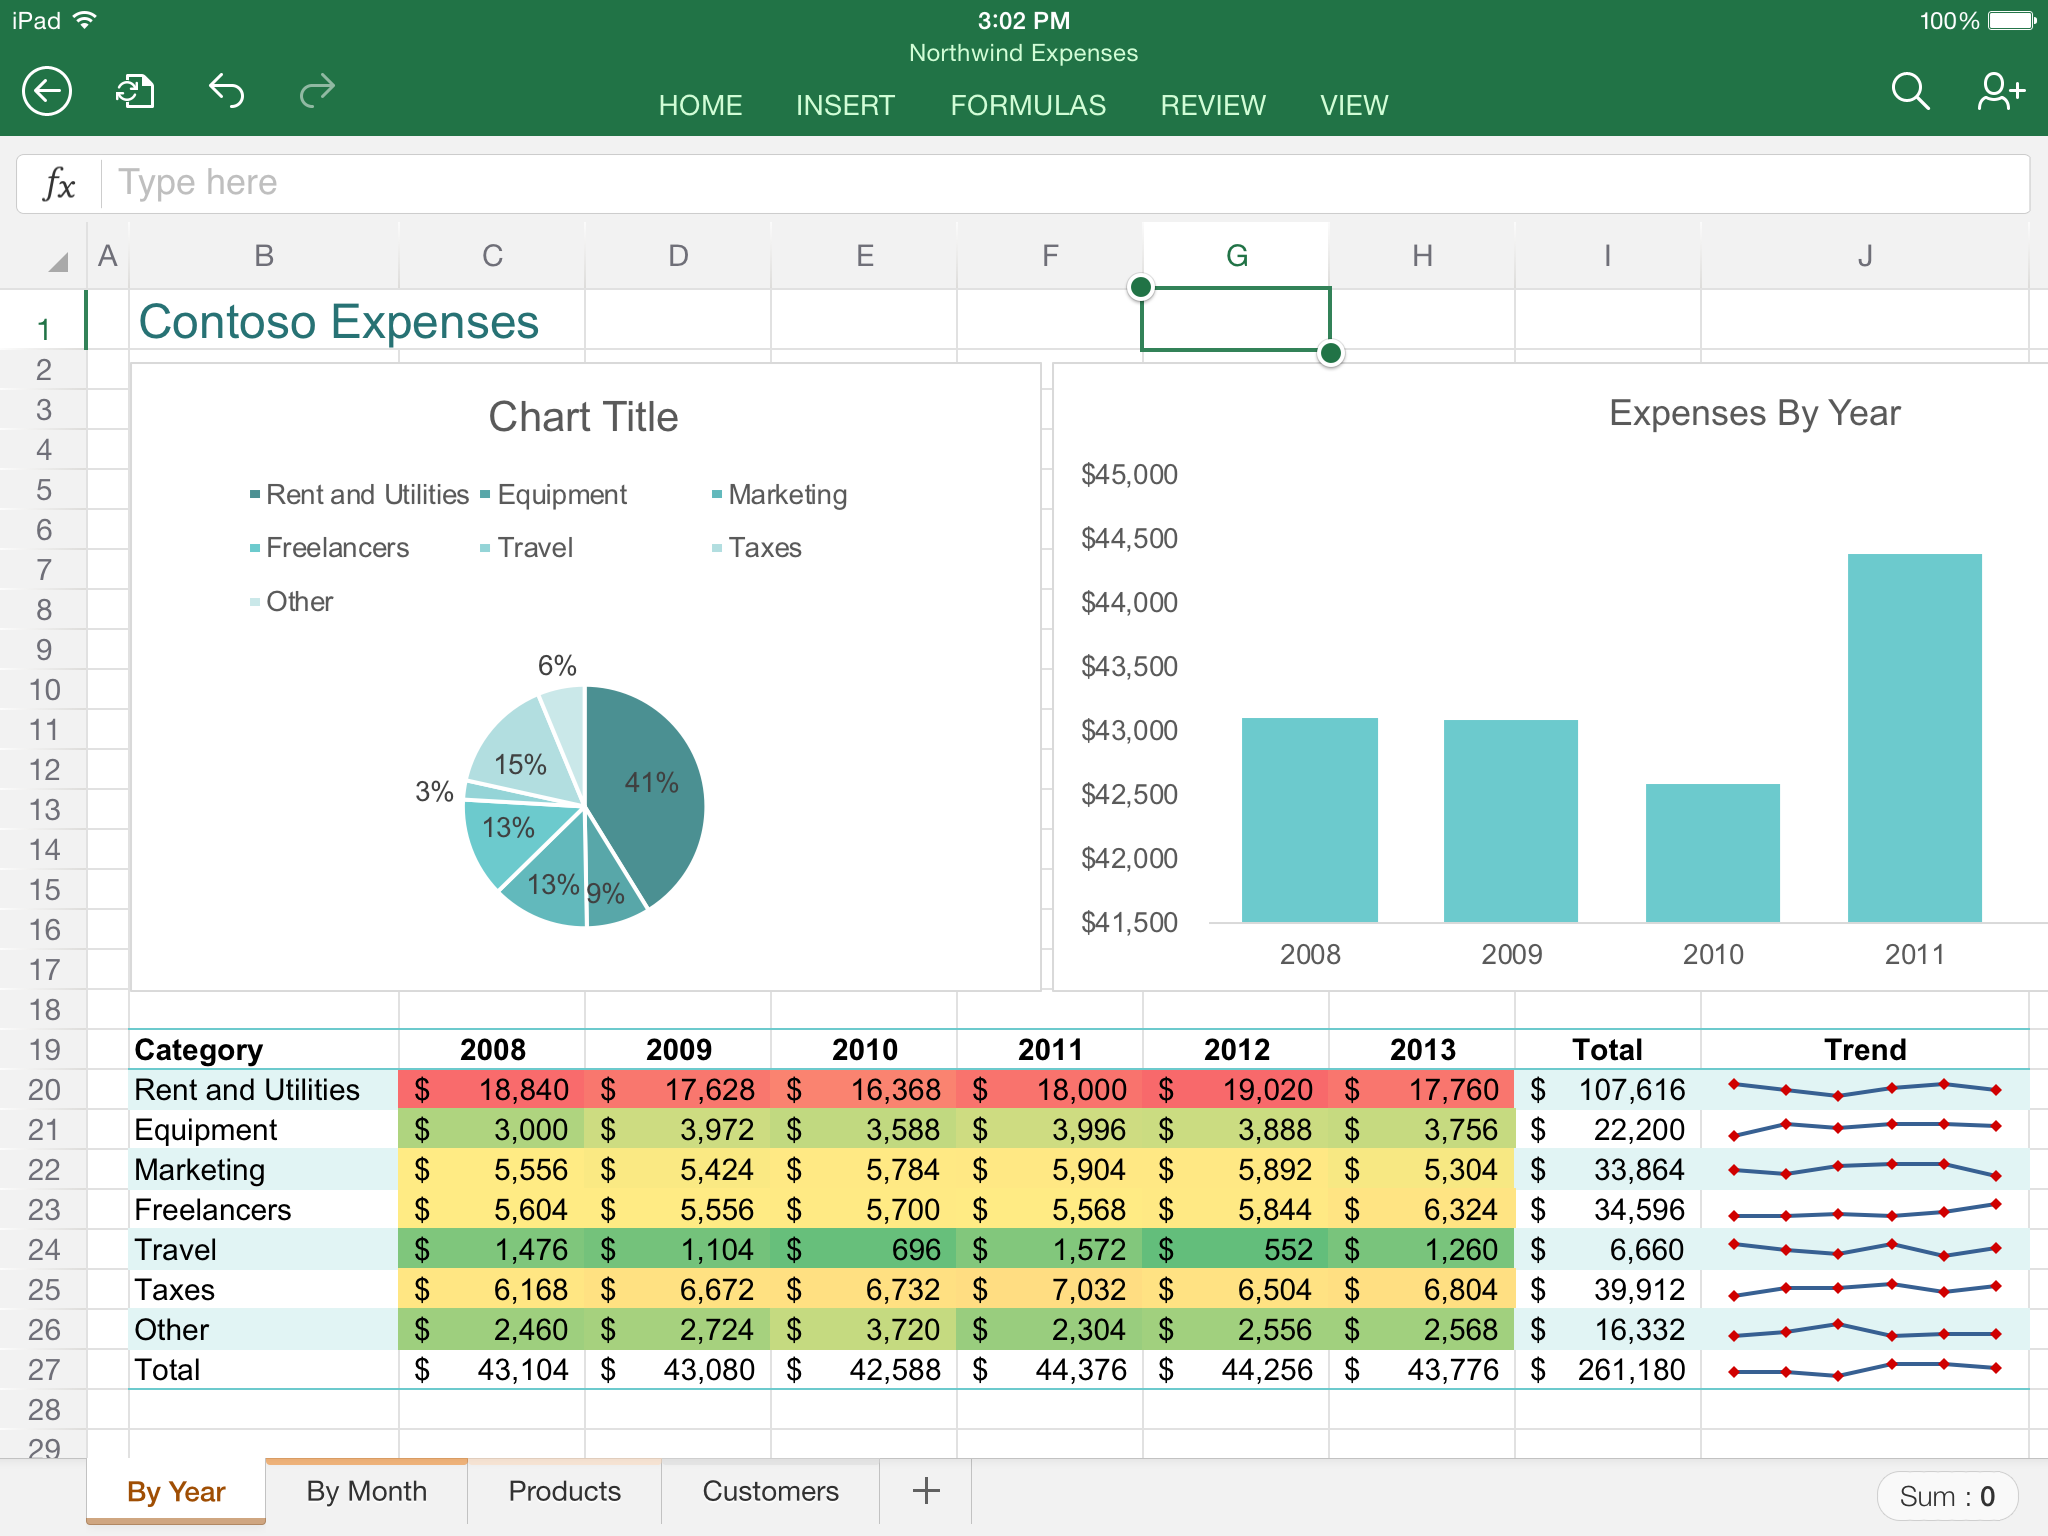 Ediblewildsus  Remarkable App Highlight Excel  Mobile Digital Now With Interesting Excel In Action With Comely  Sample T Test Excel Also Remove Excel Password  In Addition How To Draw Graphs In Excel And Insert Excel Table Into Powerpoint As Well As Protect Workbook Excel  Additionally Excel Vba Save As Xlsx From Youstonybrookedu With Ediblewildsus  Interesting App Highlight Excel  Mobile Digital Now With Comely Excel In Action And Remarkable  Sample T Test Excel Also Remove Excel Password  In Addition How To Draw Graphs In Excel From Youstonybrookedu